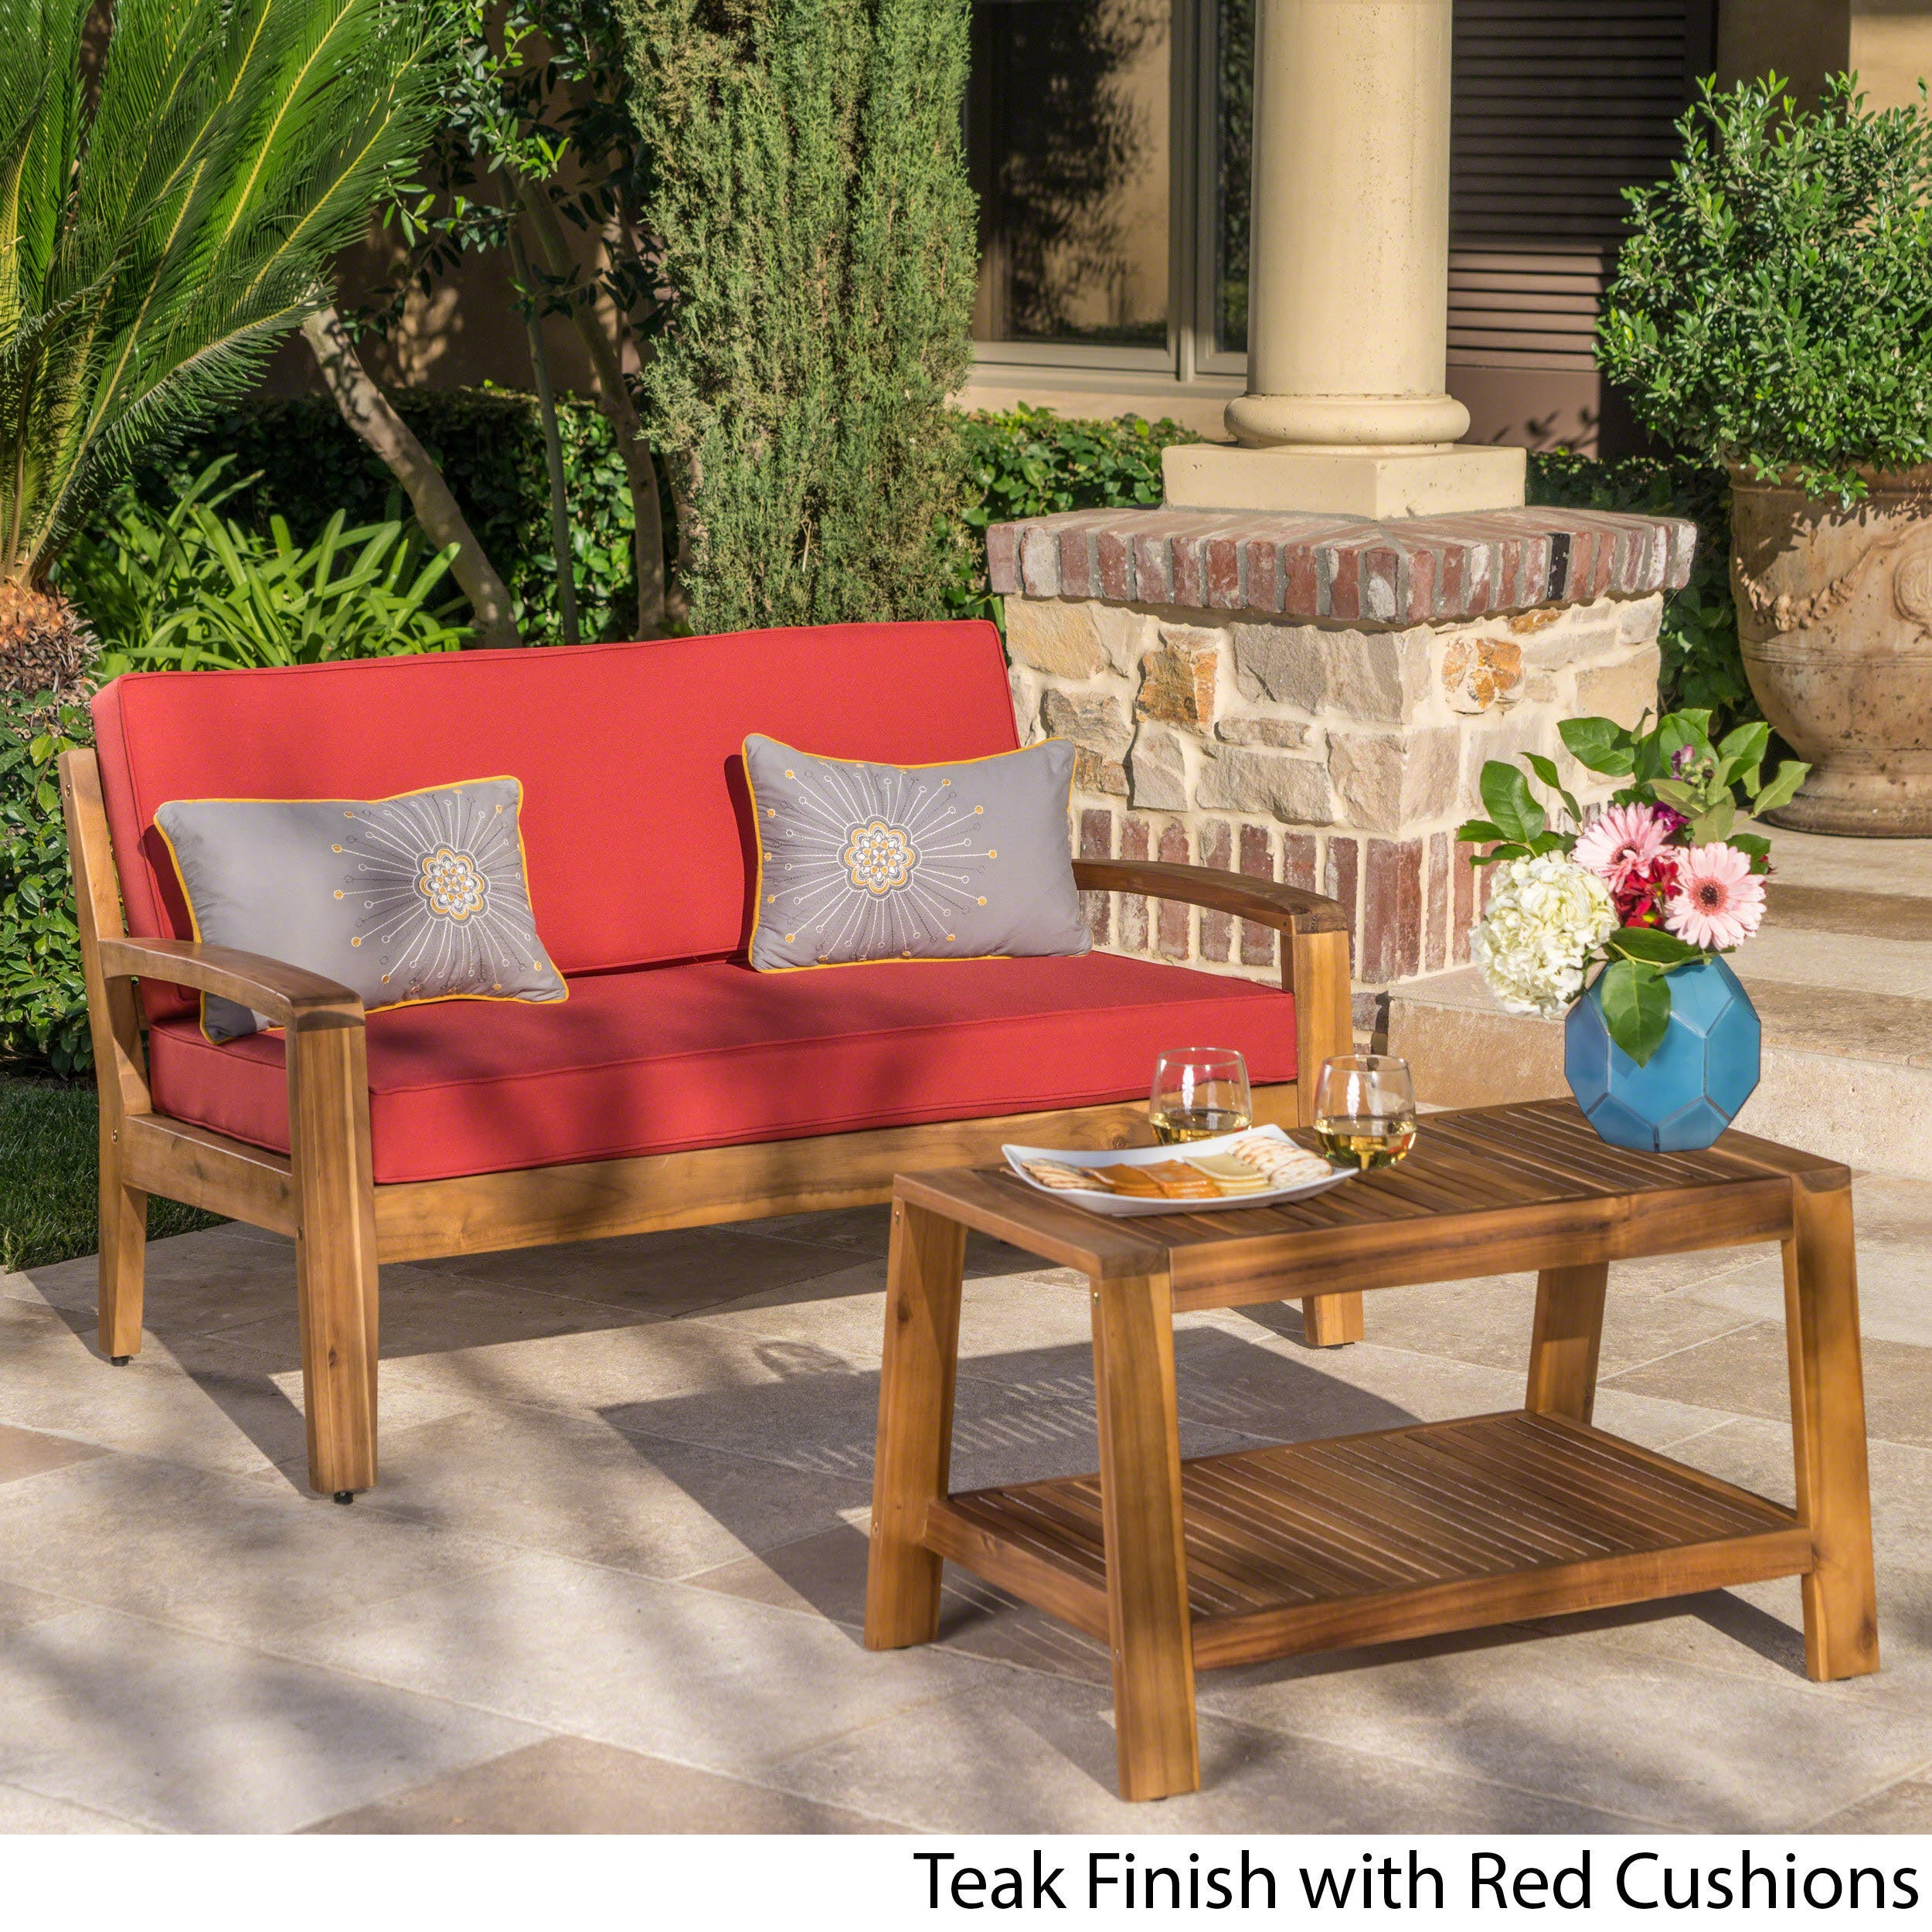 Grenada Outdoor 2 Piece Acacia Wood Loveseat And Coffee Table Set With Cushions By Christopher Knight Home Free Shipping Today 25767406